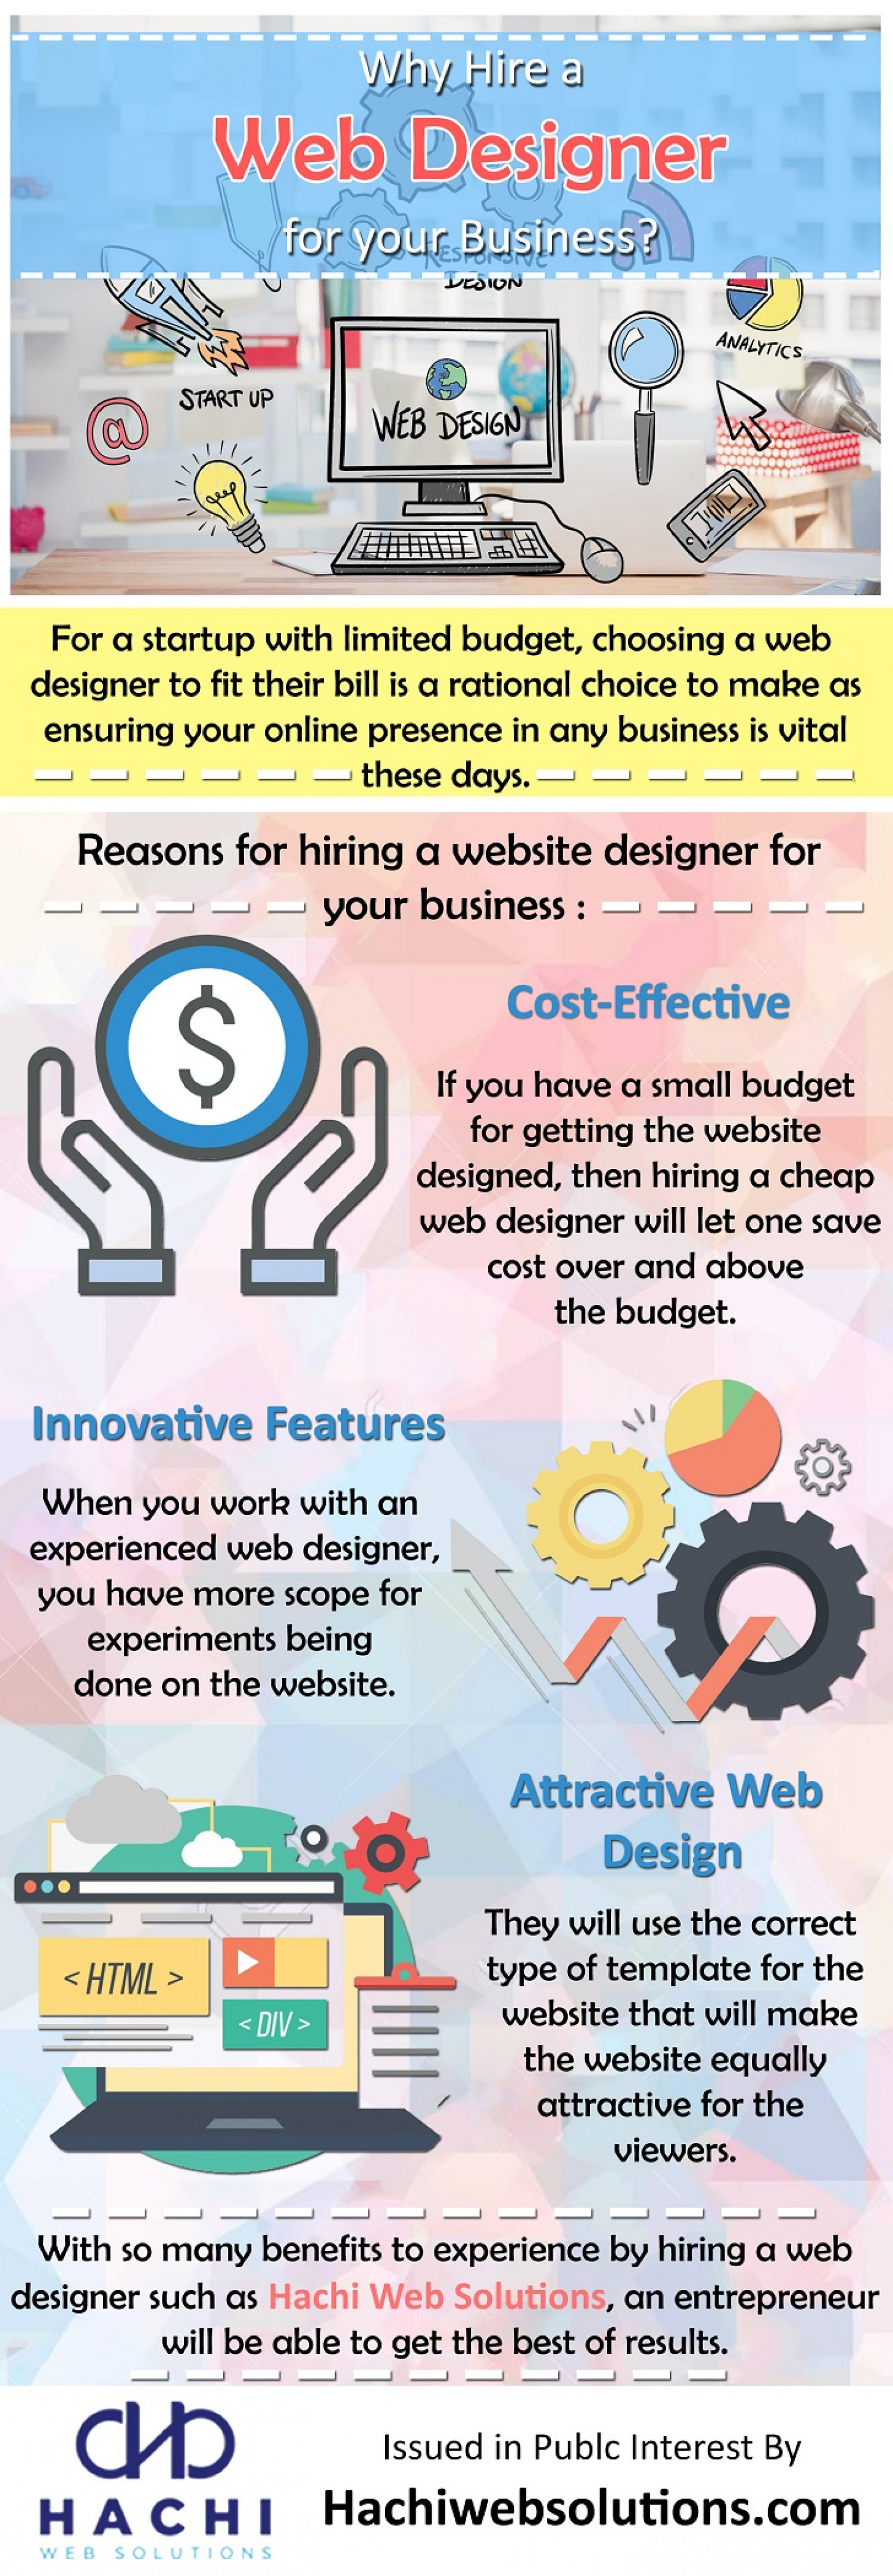 Why Hire a Web Designer for your Business? Infographic